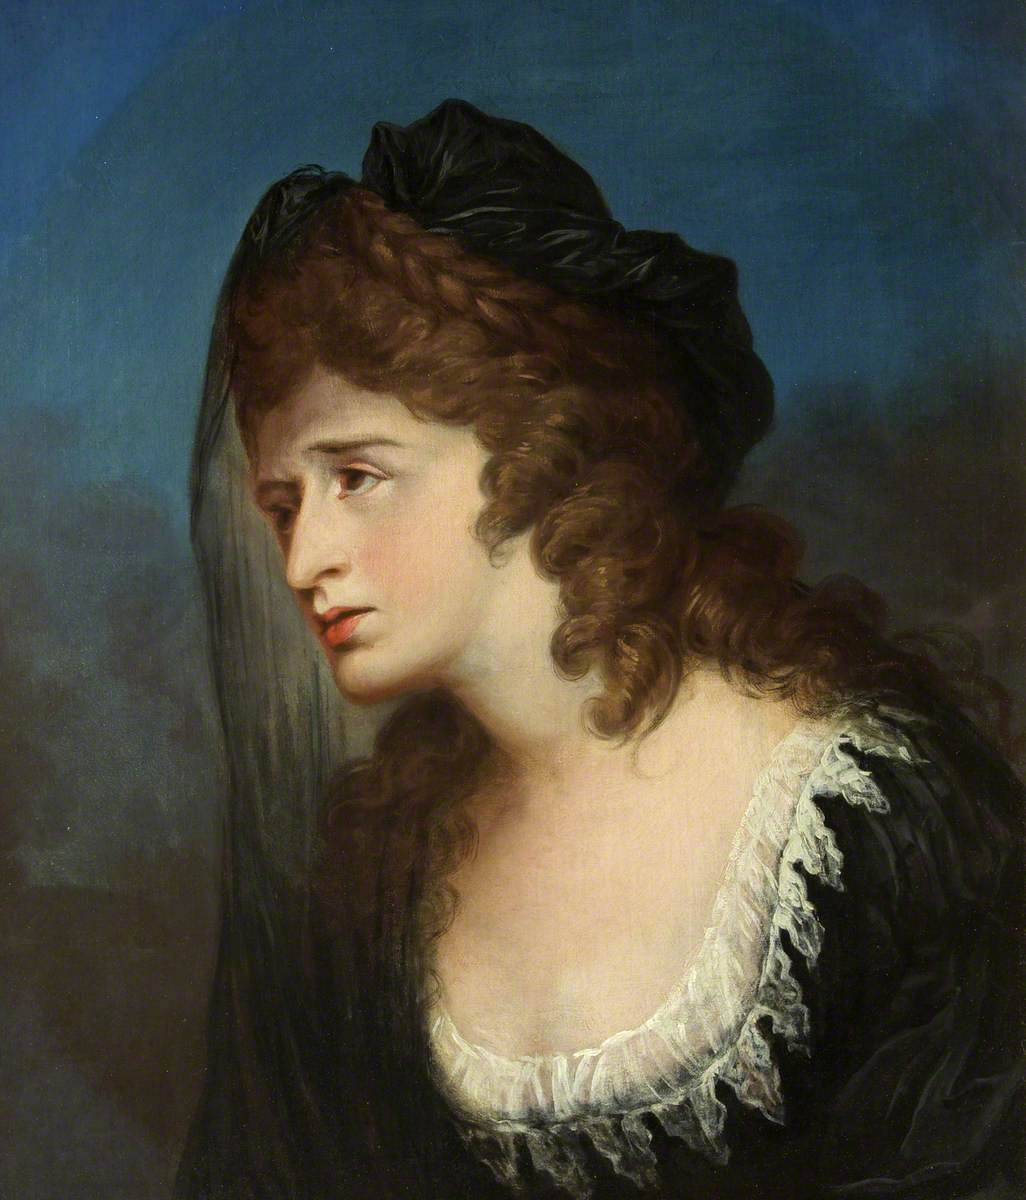 Sarah Siddons as Isabella from 'The Tragedy of Isabella' or 'The Fatal Marriage'